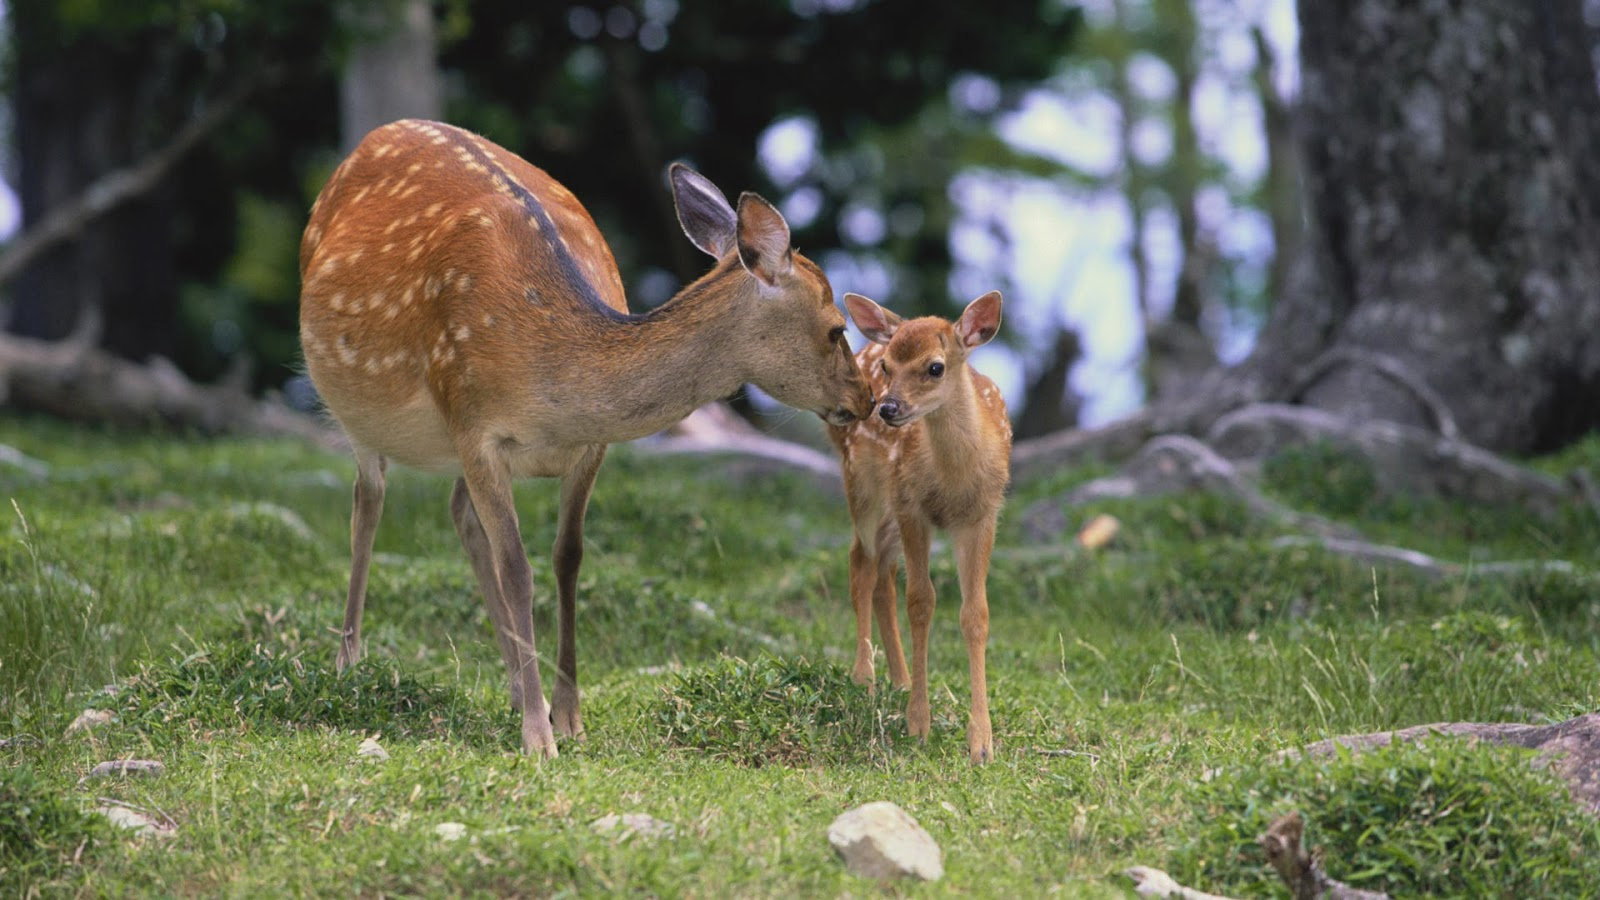 Beautiful Wallpapers deer wallpaper 1600x900